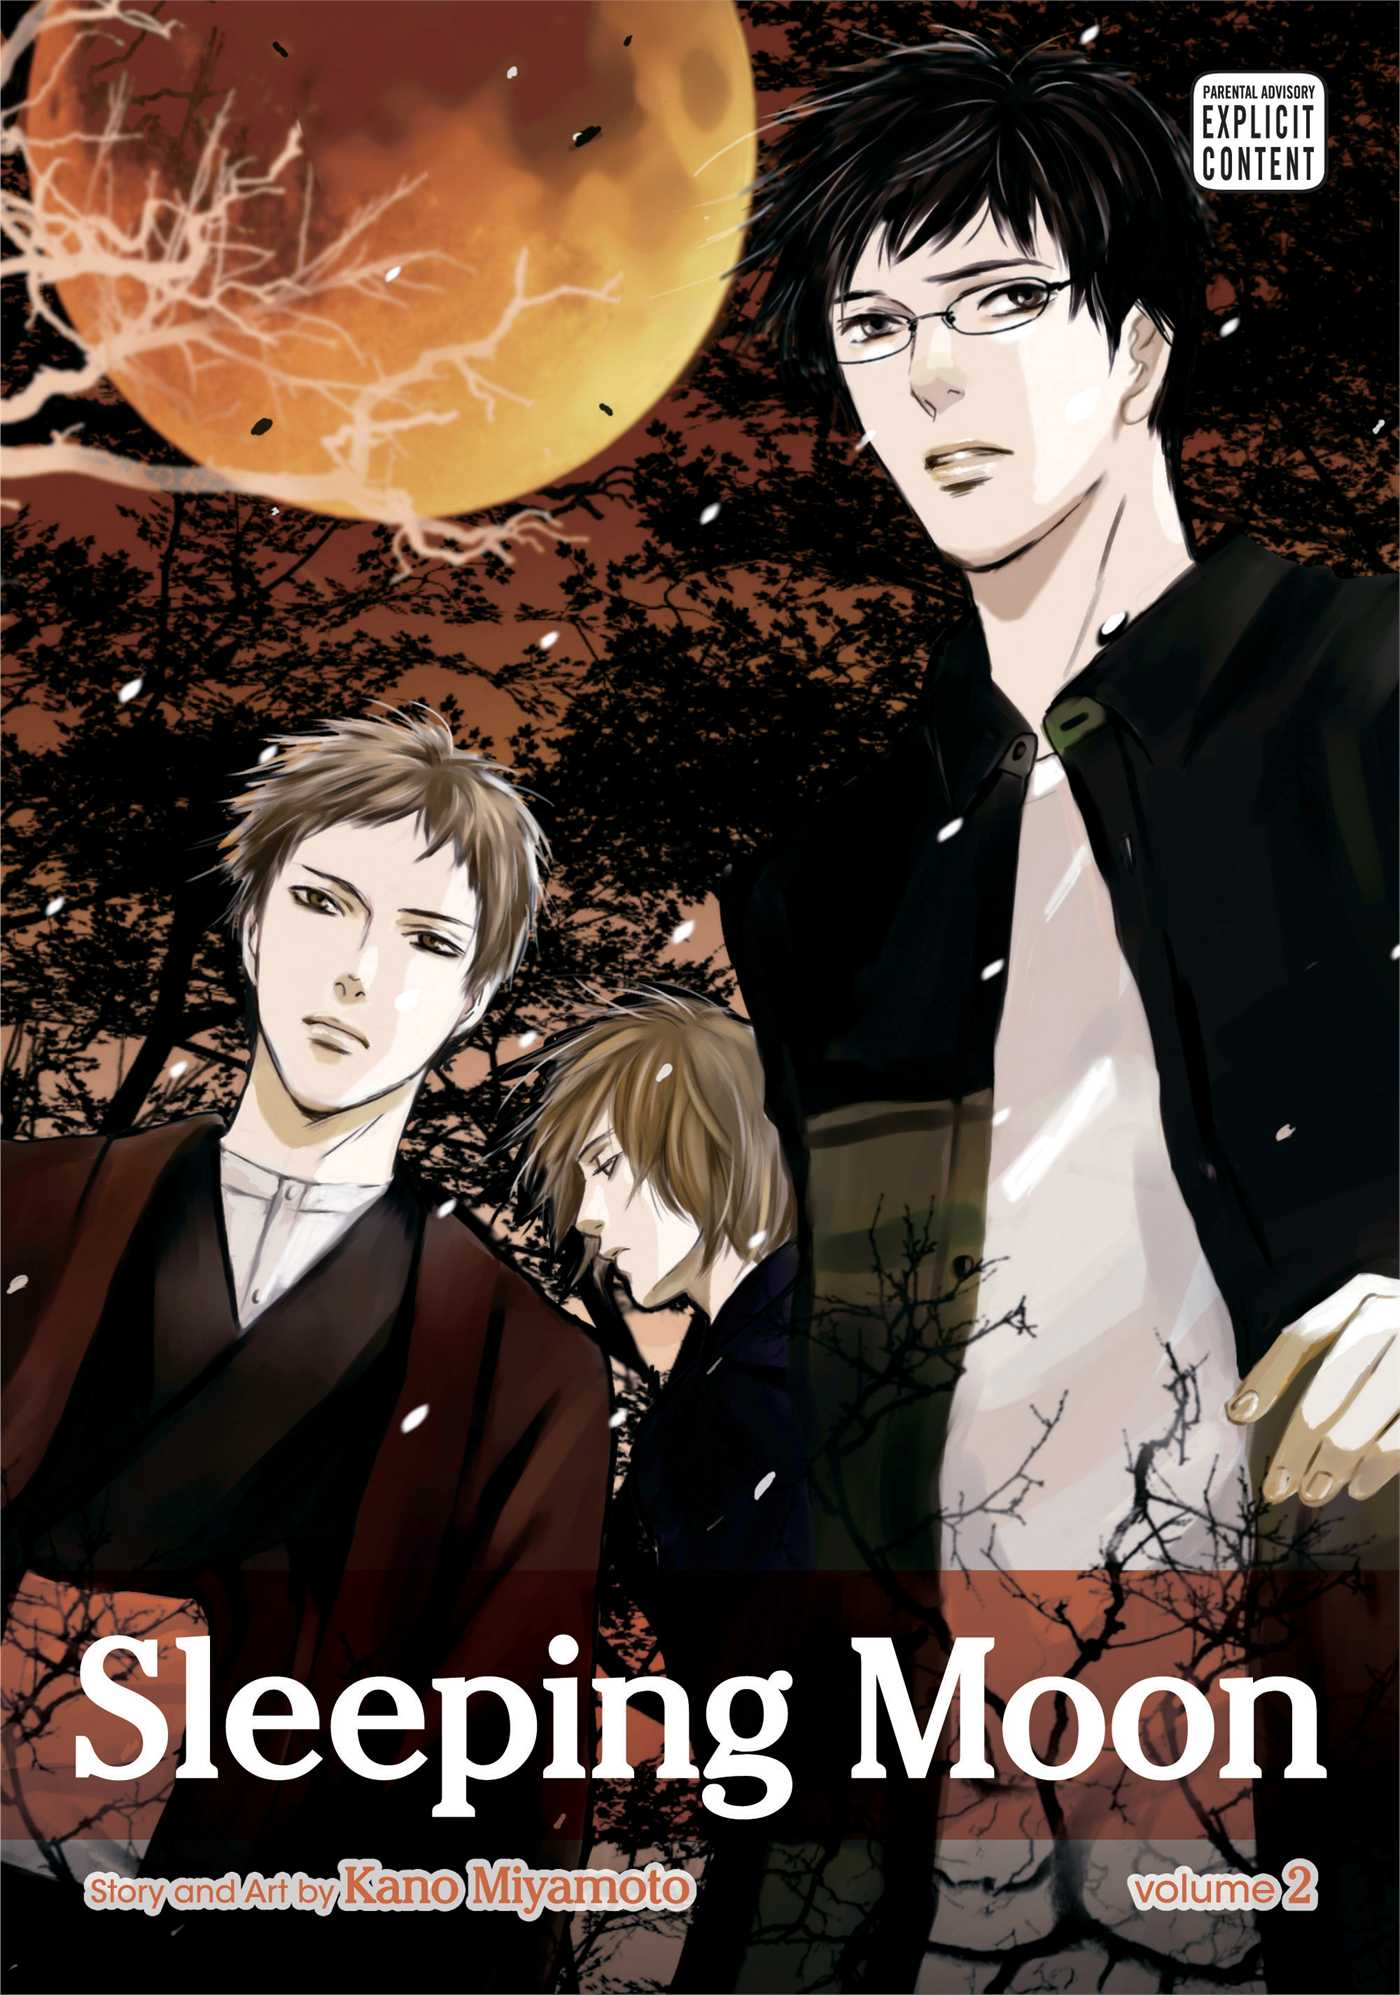 Sleeping-moon-vol-2-9781421555515_hr